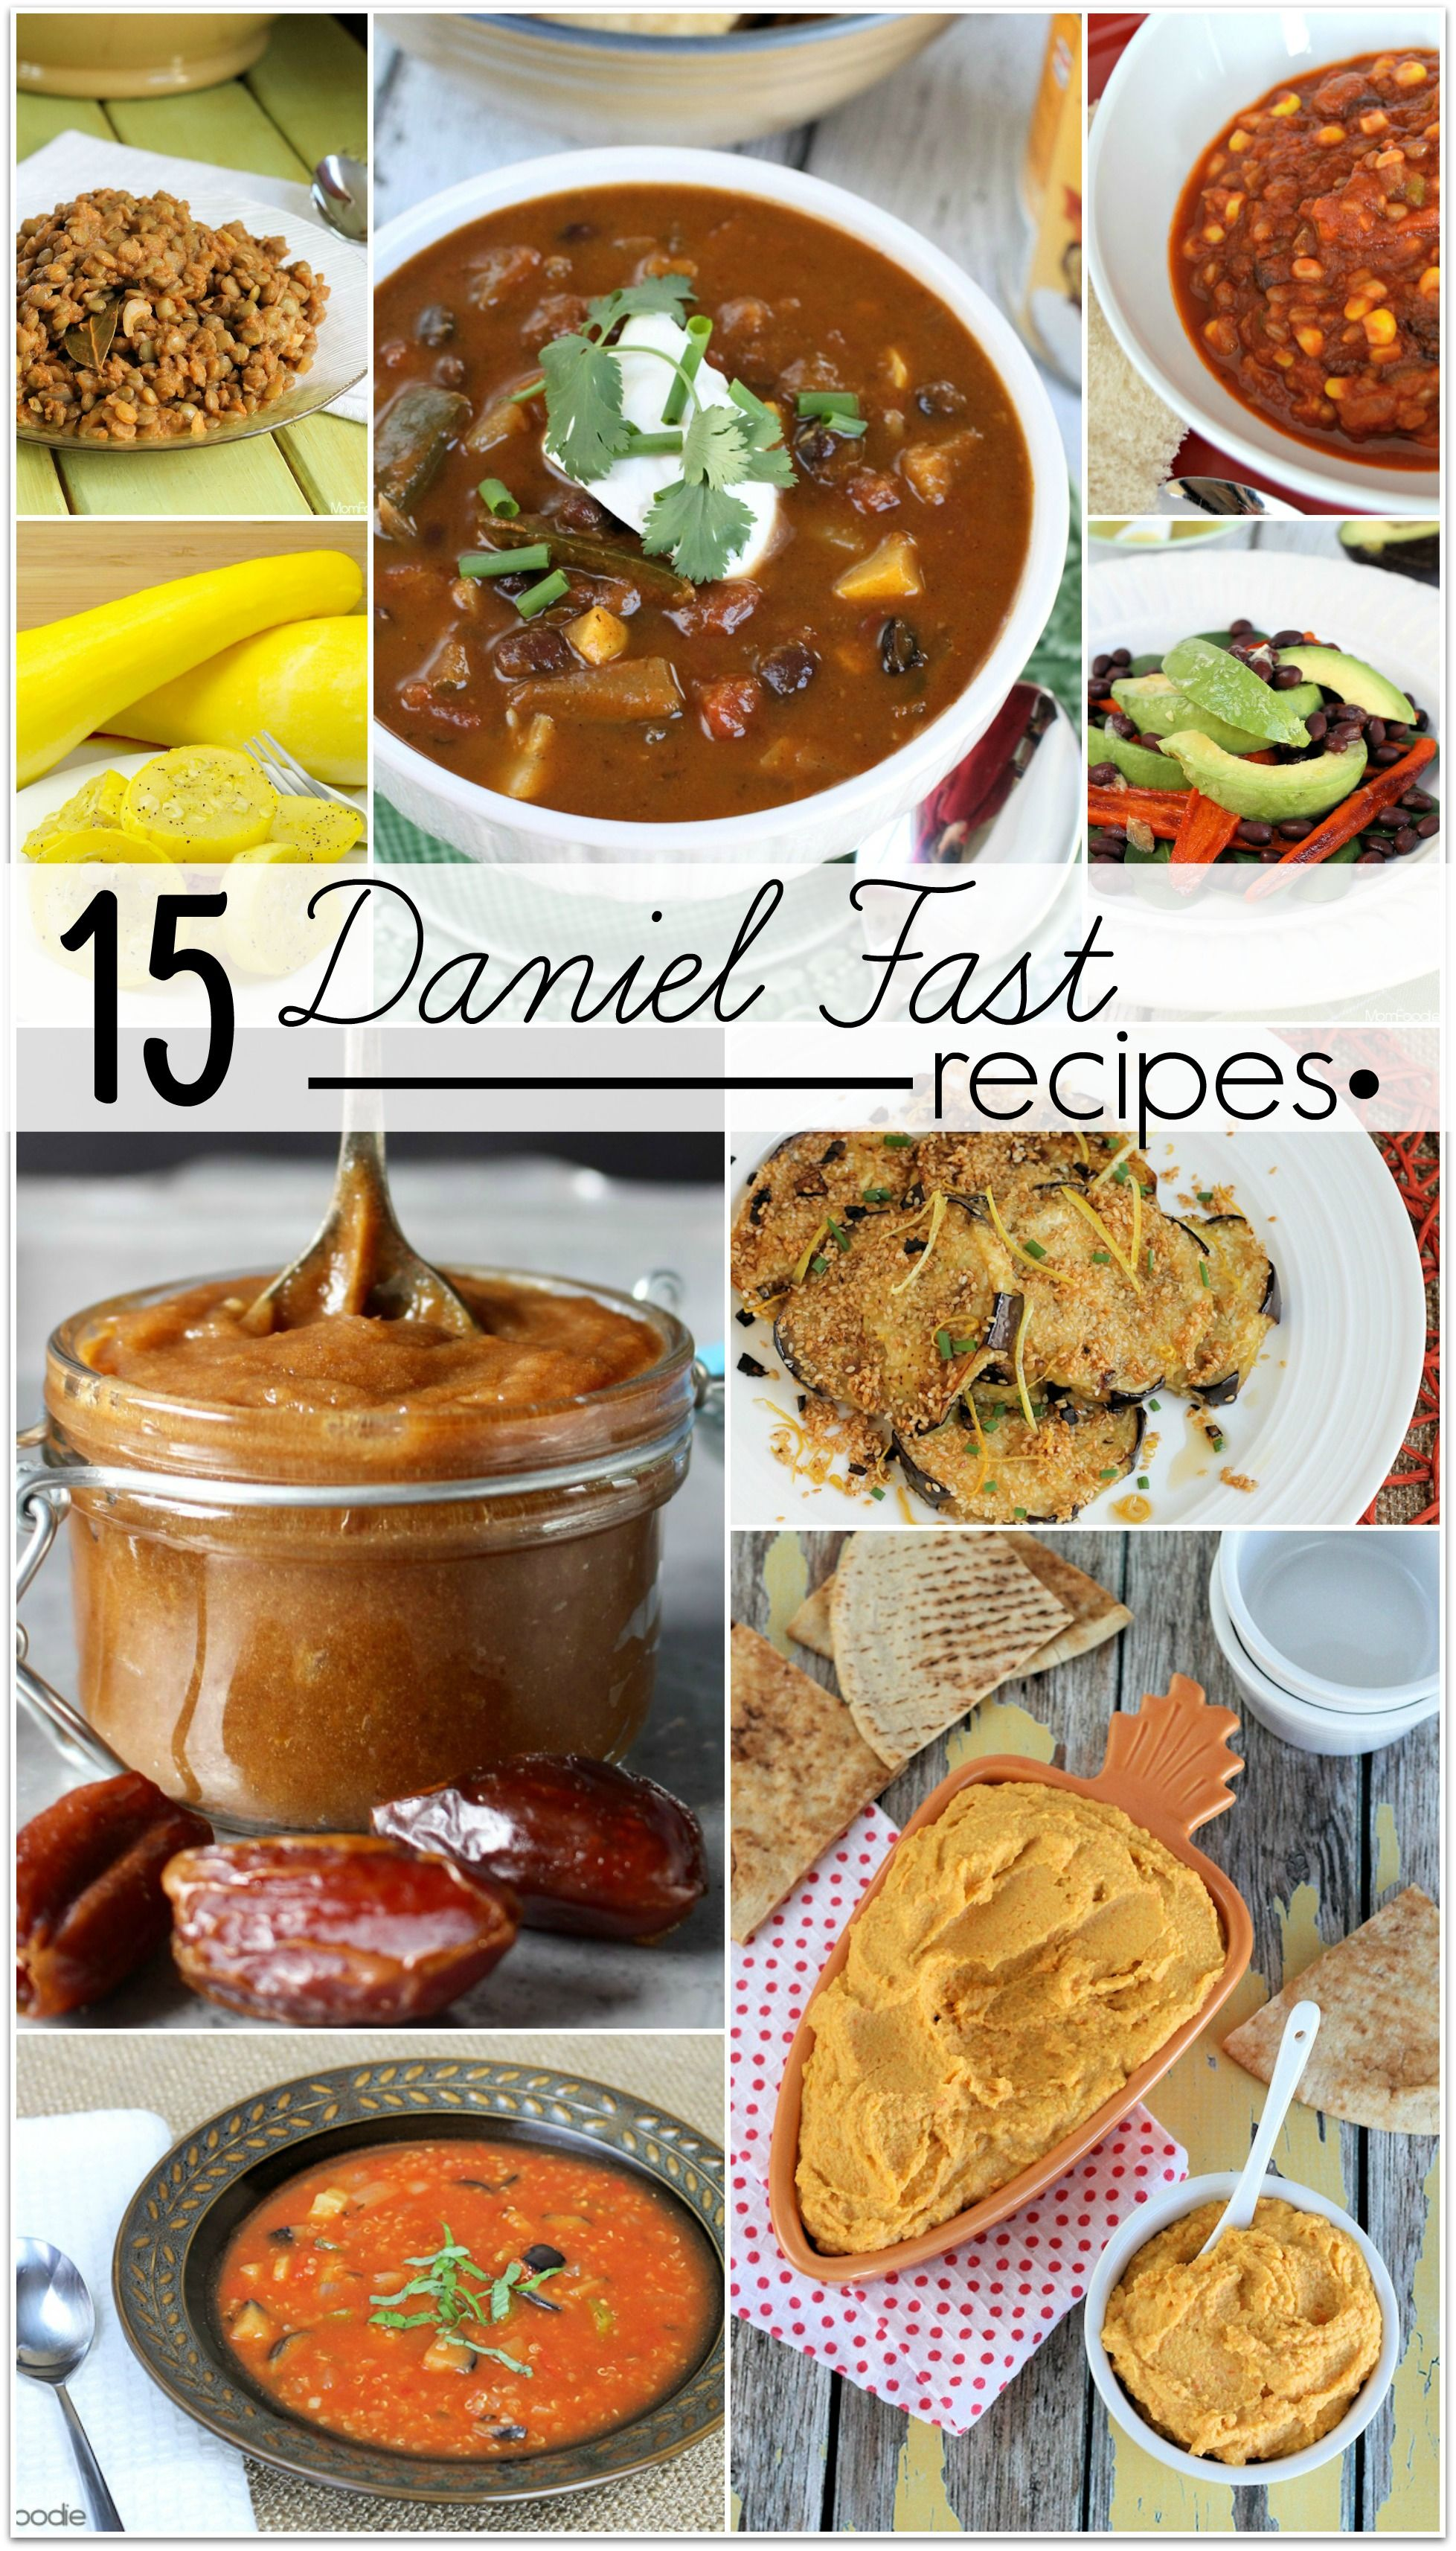 Daniel fast recipes potatoes